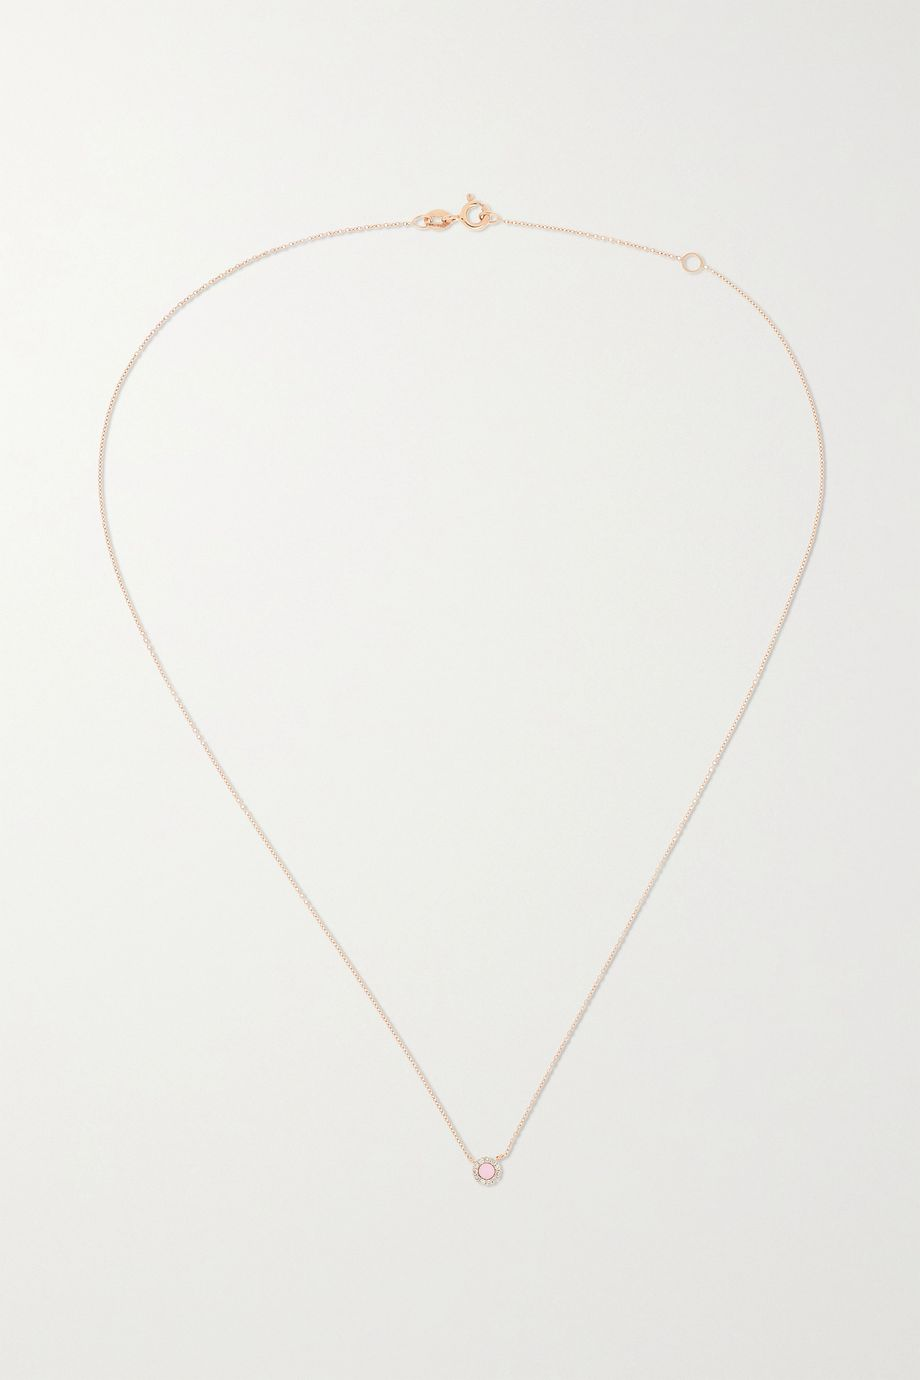 Diane Kordas 18-karat rose gold, coral and diamond necklace